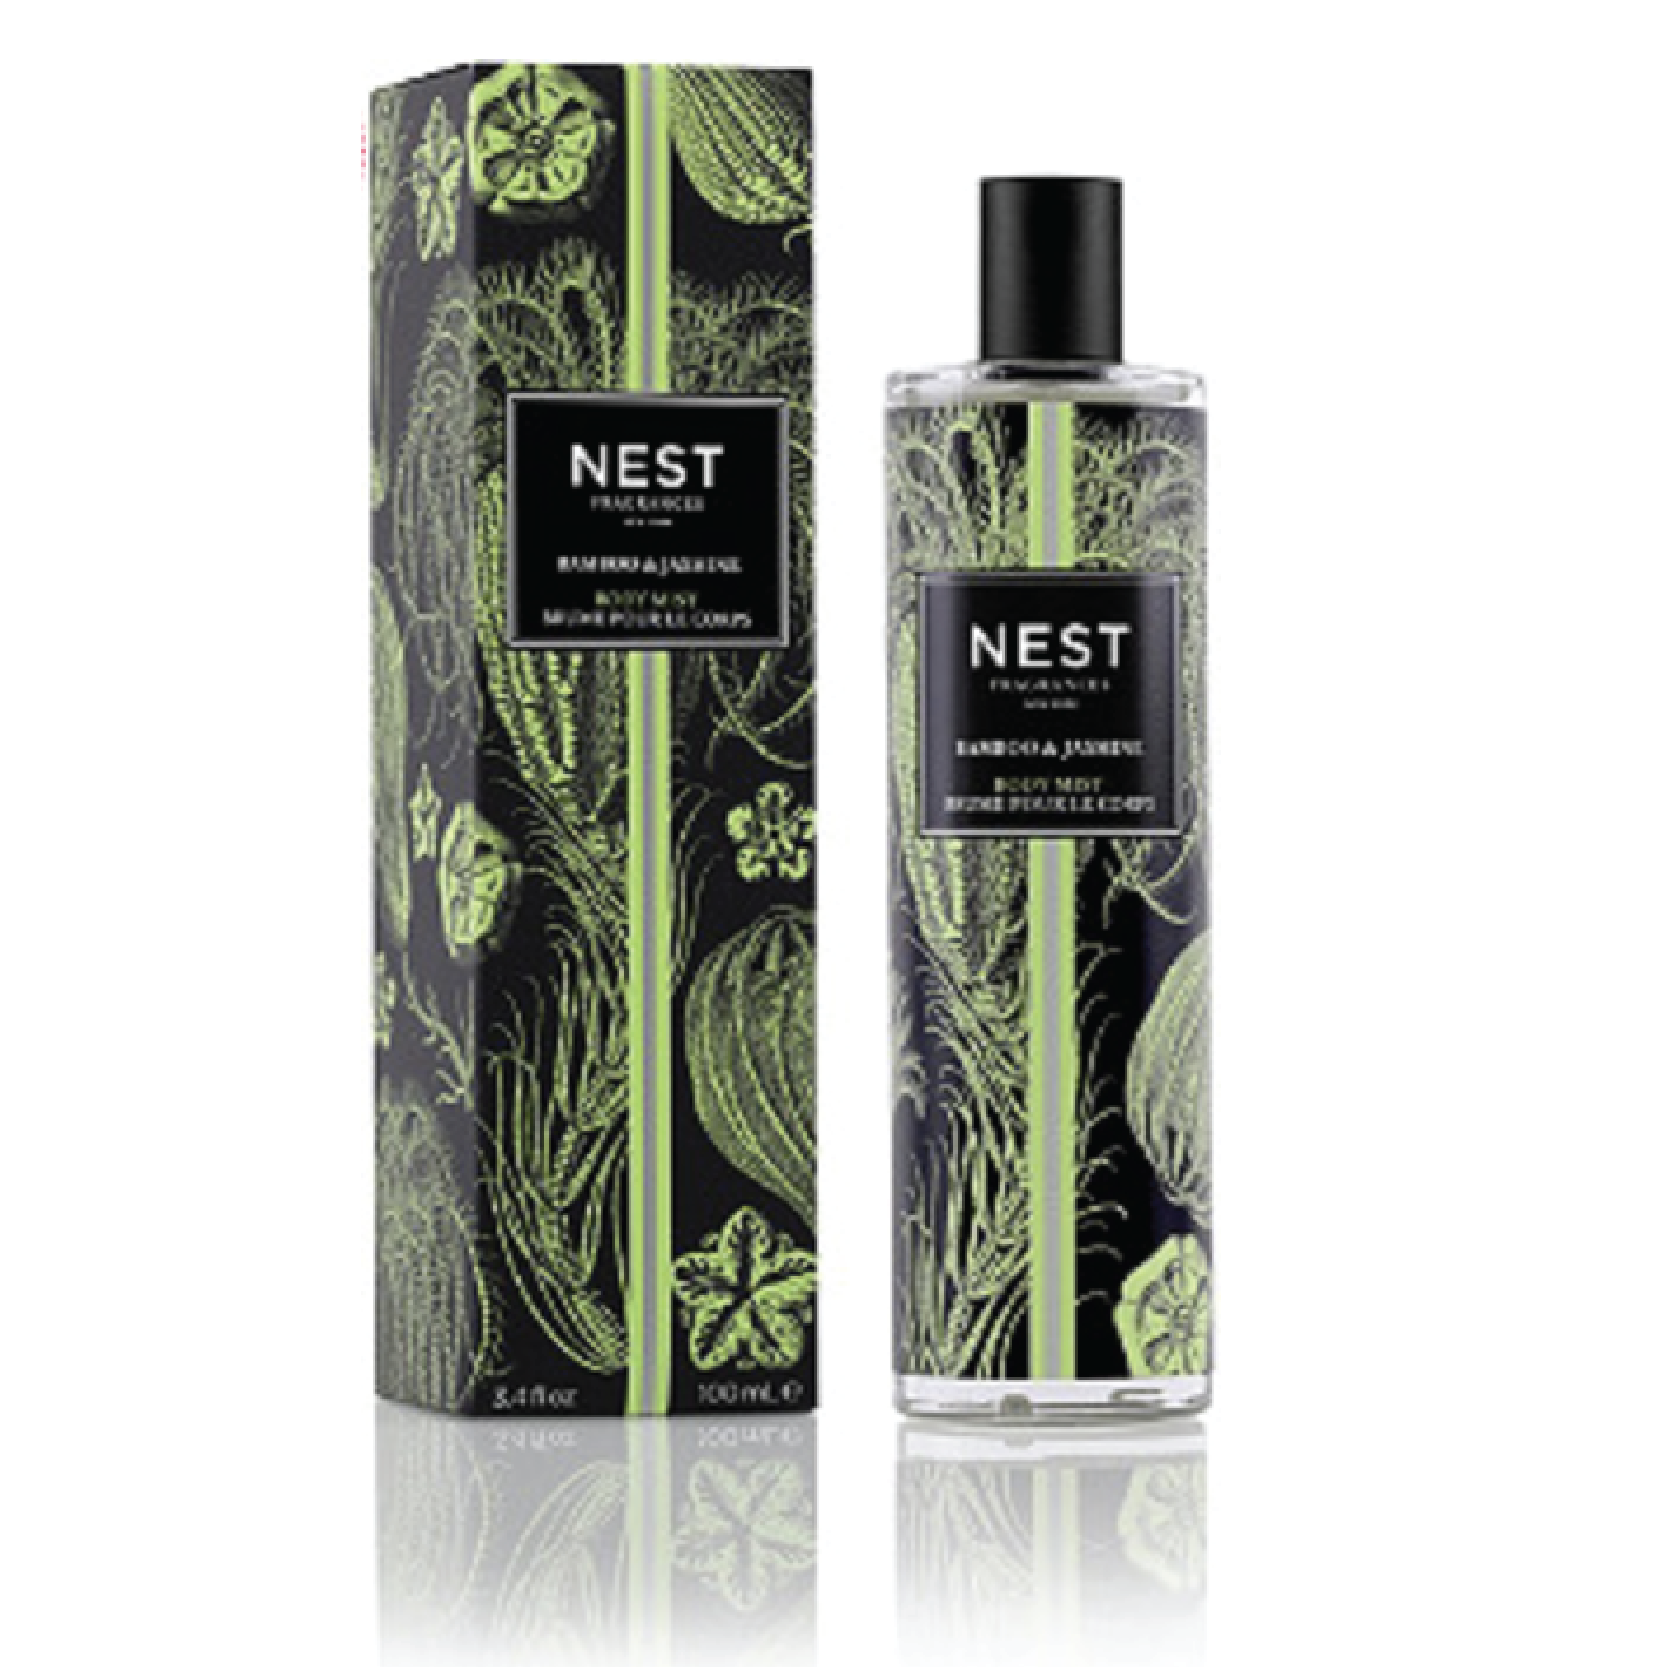 Nest Fragrances Bamboo & Jasmine Body Mist - $38 at UltaNest makes some of my favorite affordable fragrances. Their scents linger on your skin so well and they have such unique scent pairings.